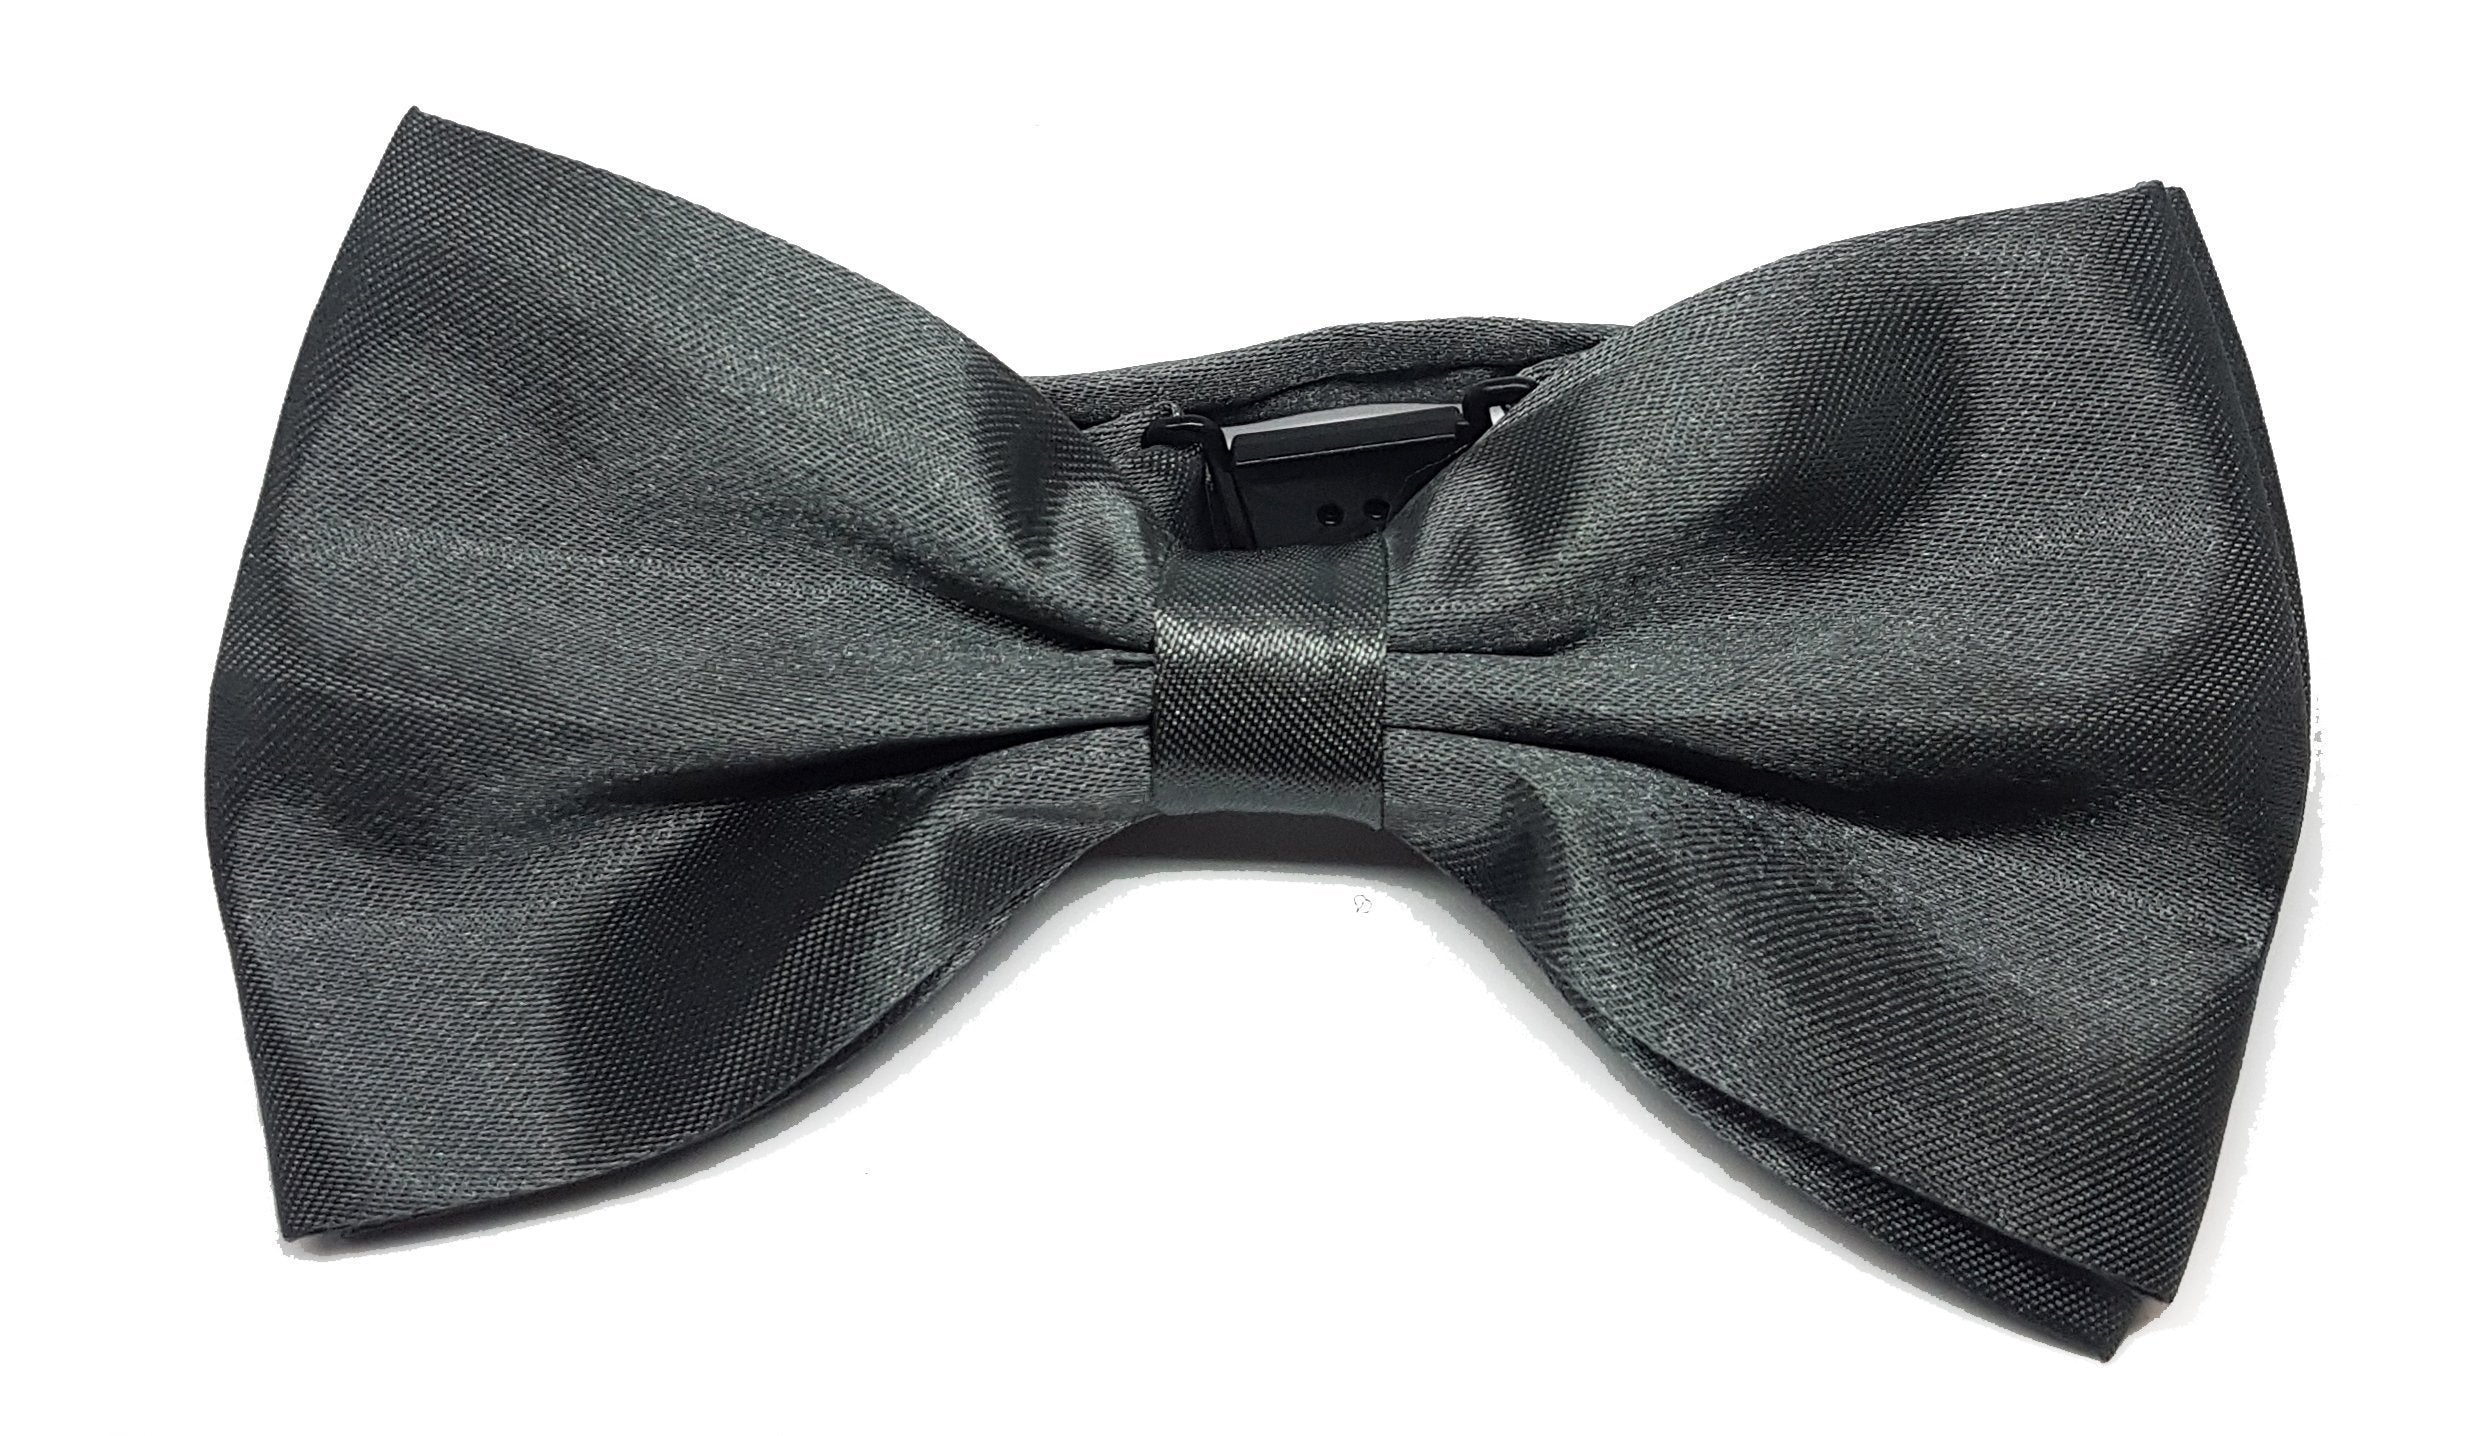 Shiny gun metal grey bow tie for gentlemen